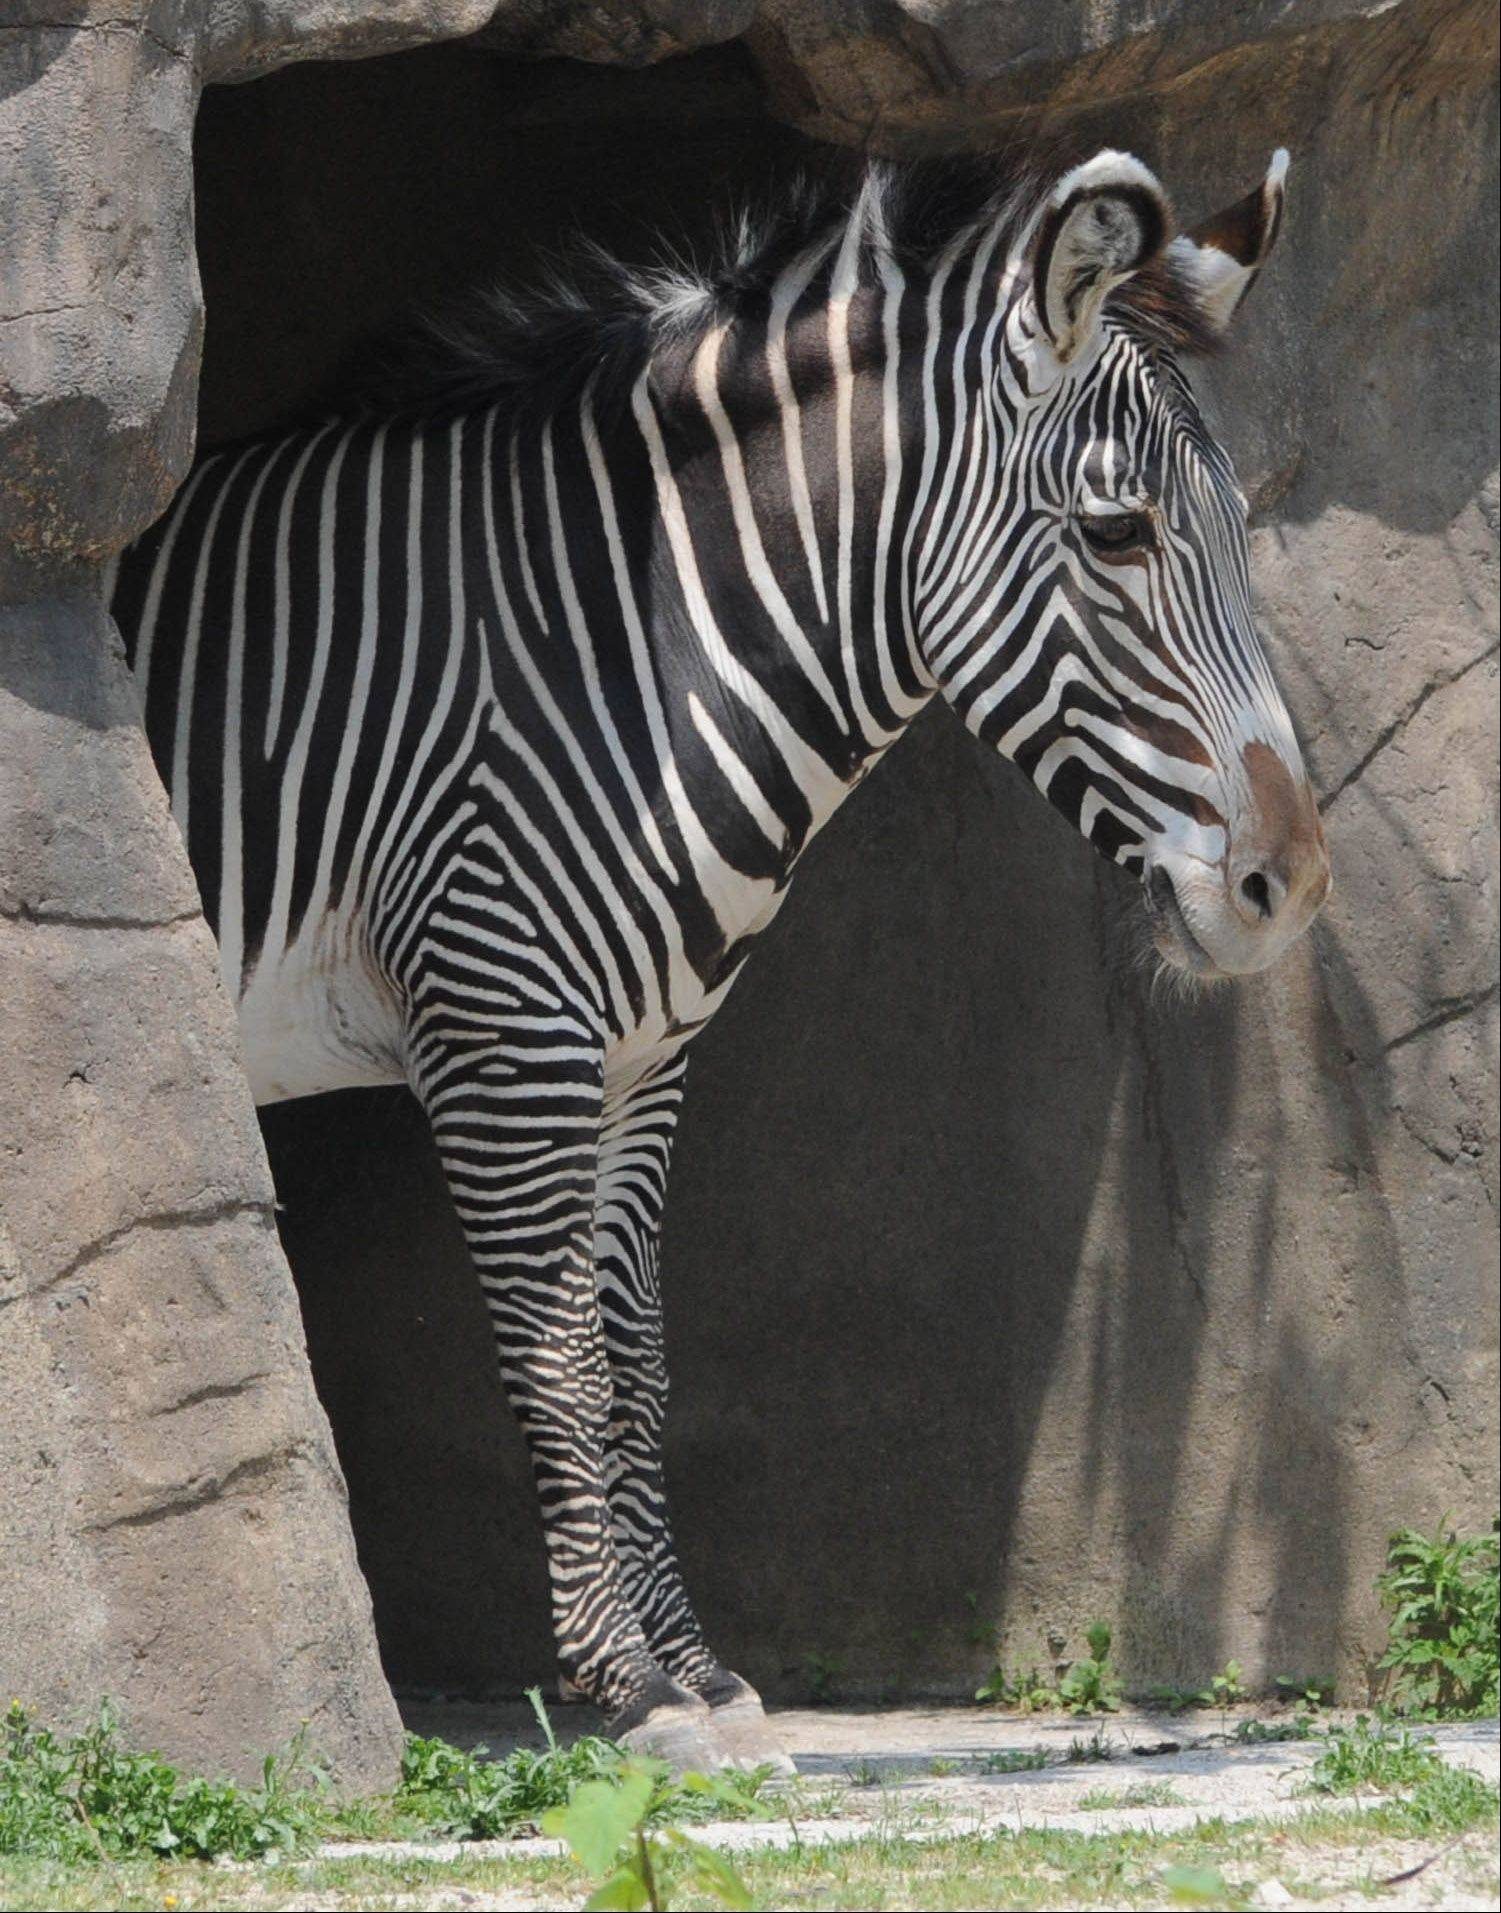 Zebras have stripes to help them blend into their surroundings in the wild.